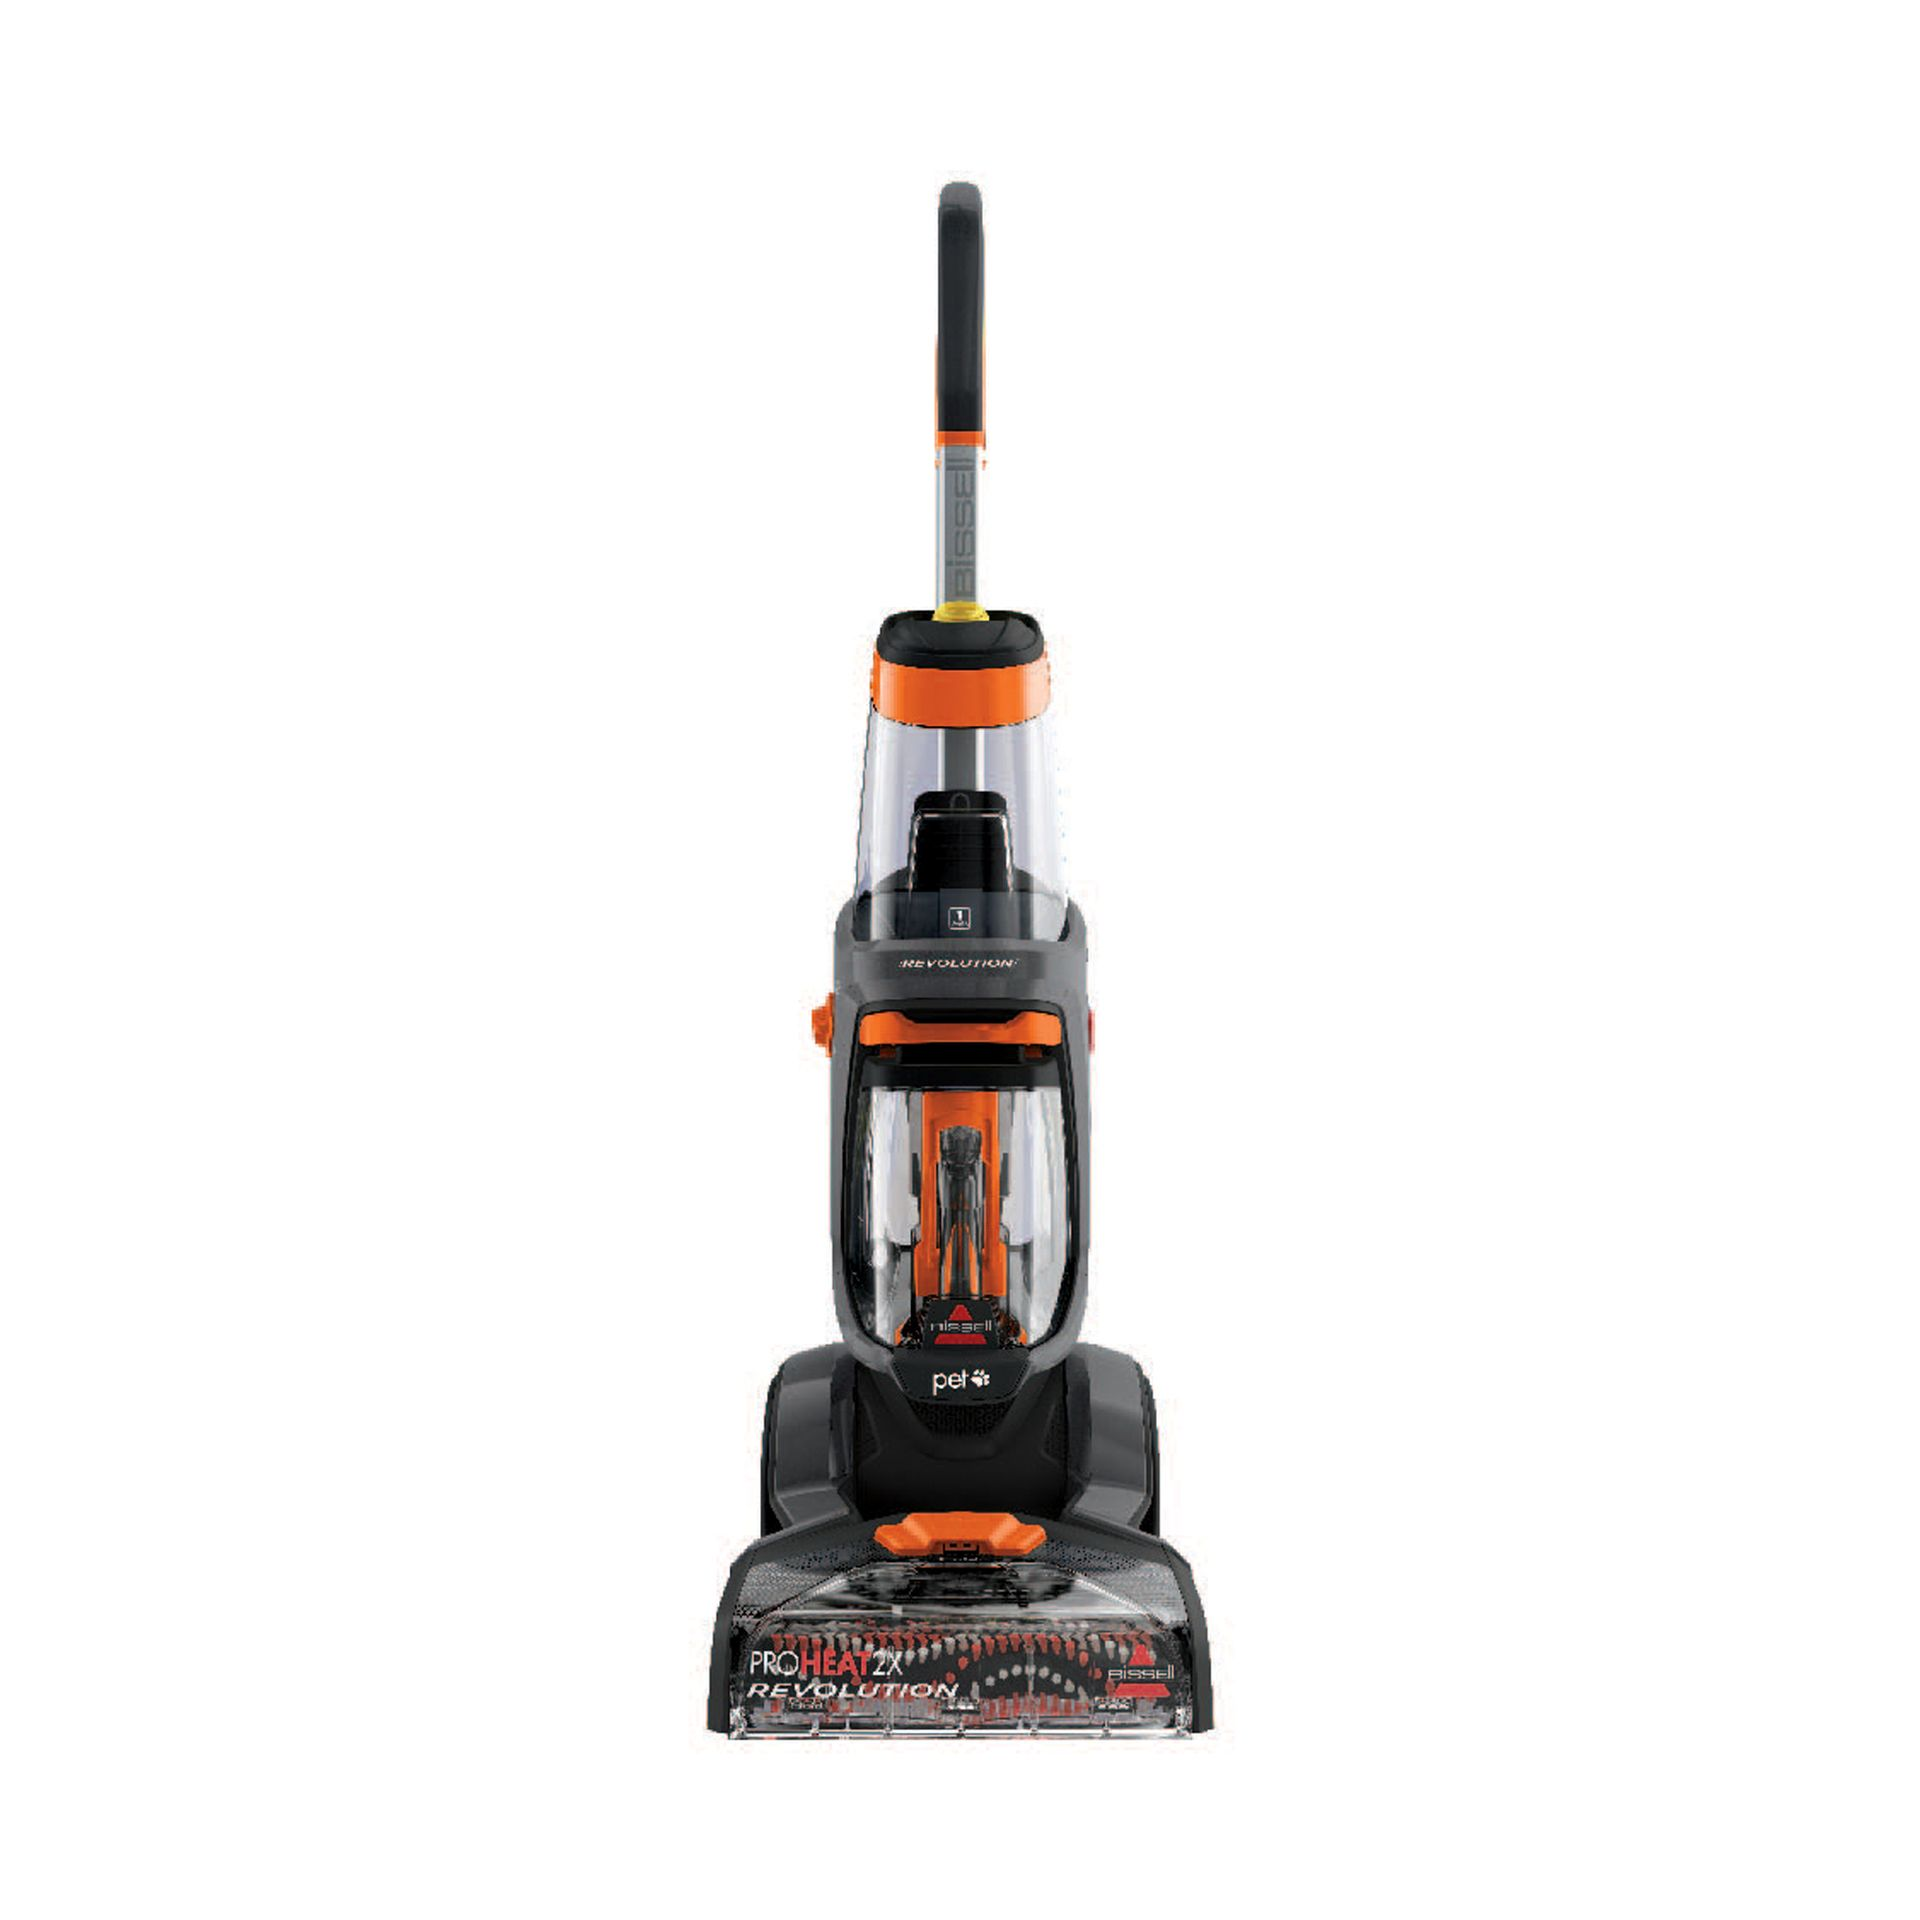 Bissell proheat 2x revolution upright deep cleaner